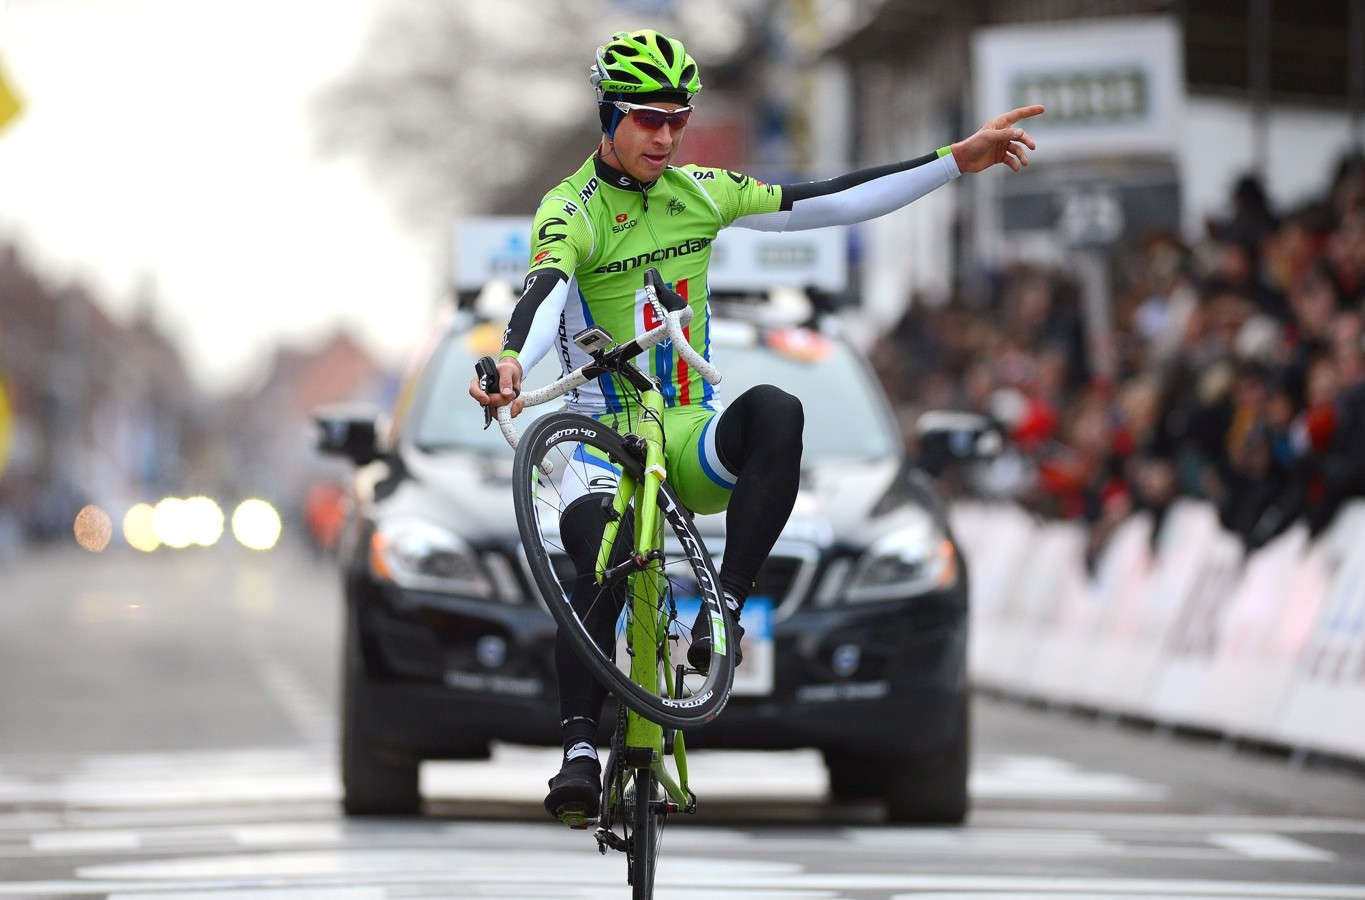 Peter Sagan pulling a wheelie at Gent-Wevelgem in 2013 - a skill he picked up from mountain biking